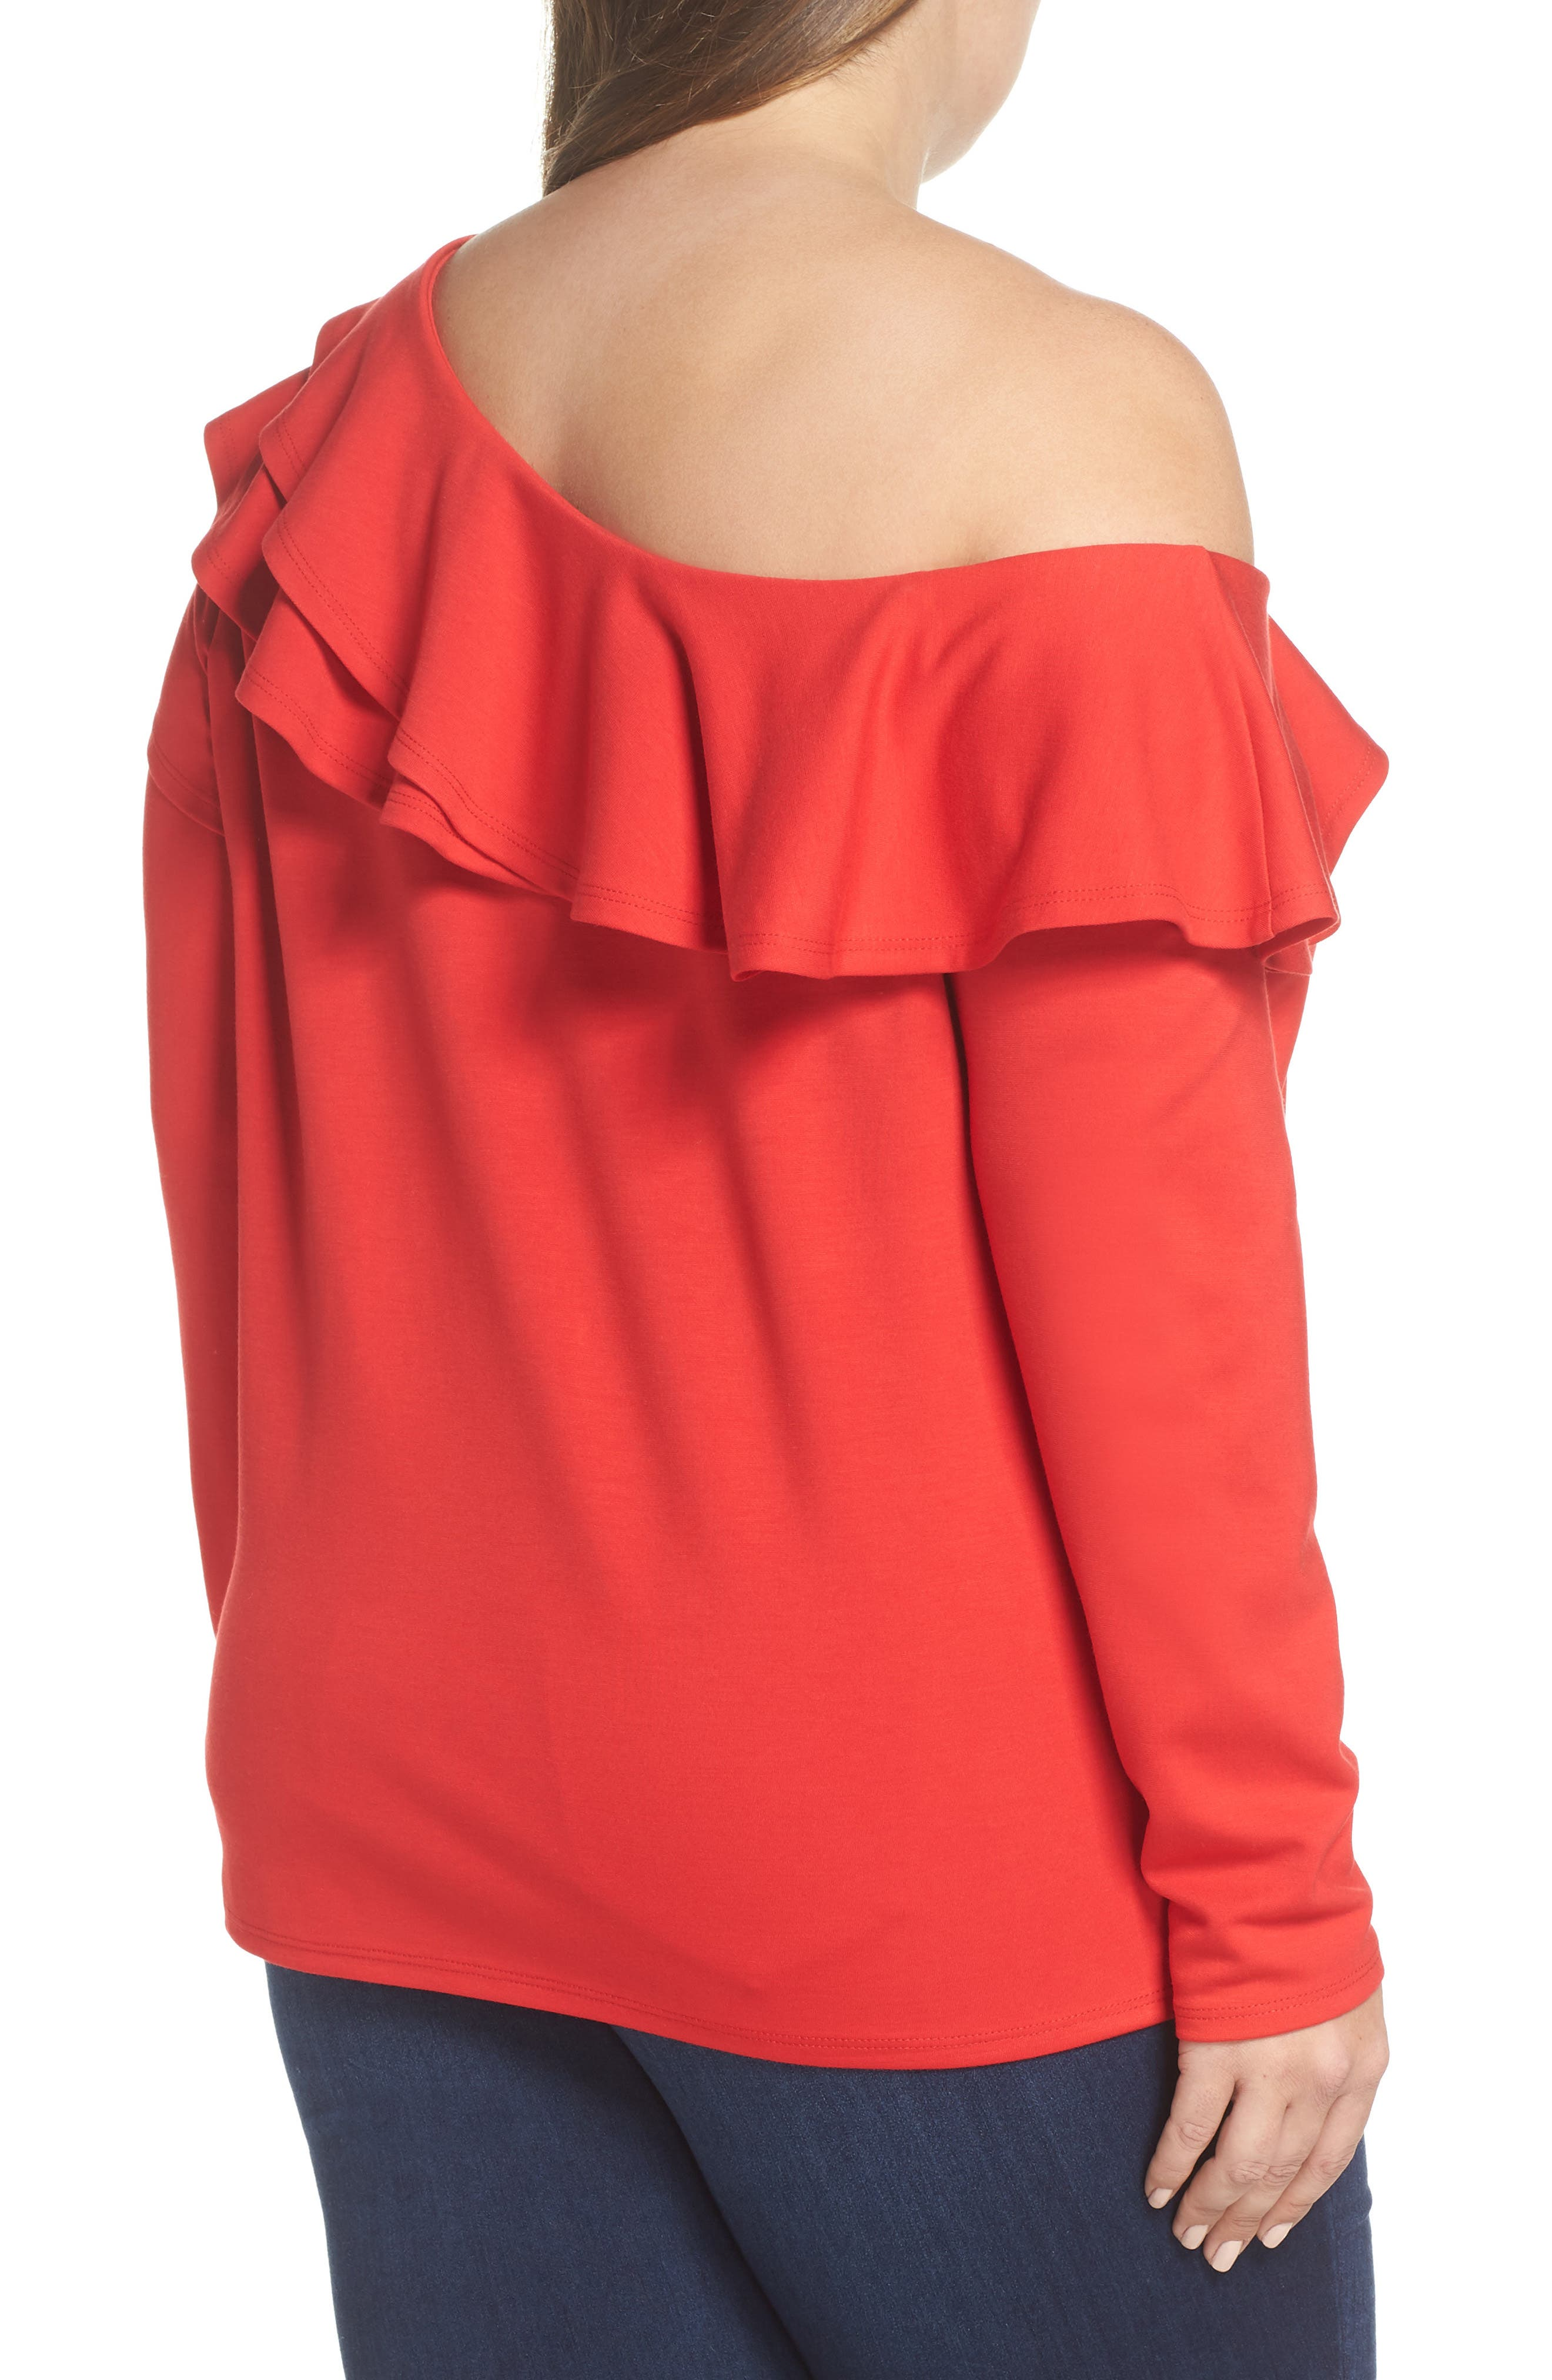 x Living in Yellow Elizabeth One-Shoulder Ruffle Top,                             Alternate thumbnail 9, color,